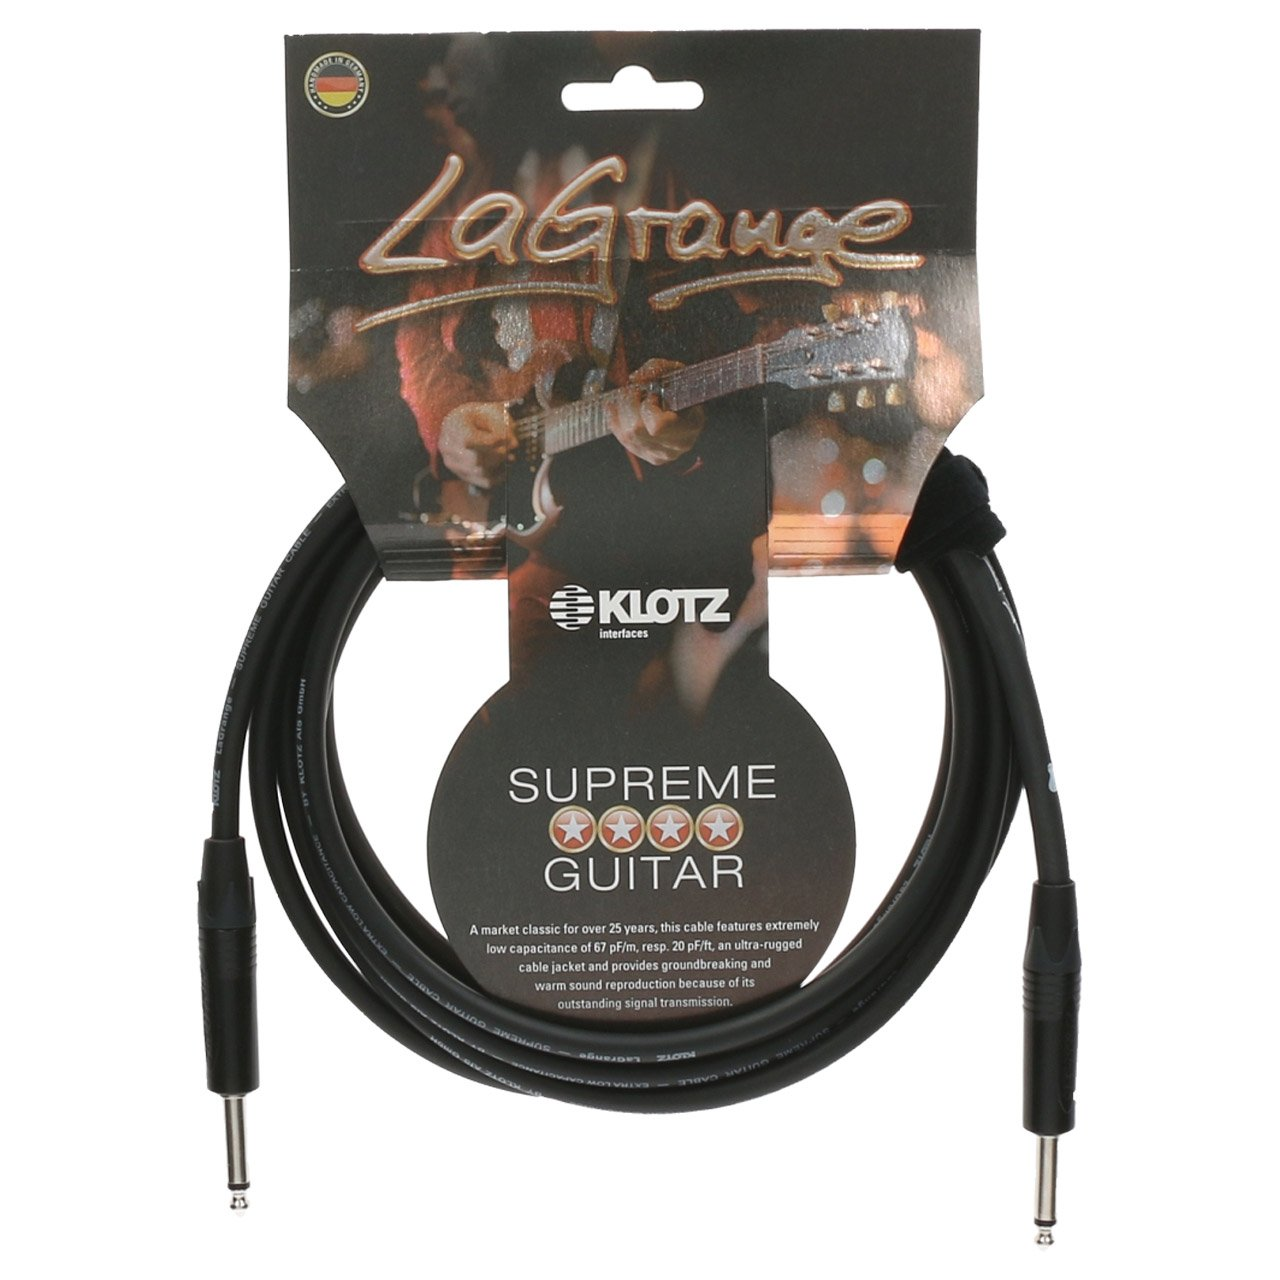 KLOTZ 15 Foot LaGrange Instrument Cable (KLO-LAPP0450)